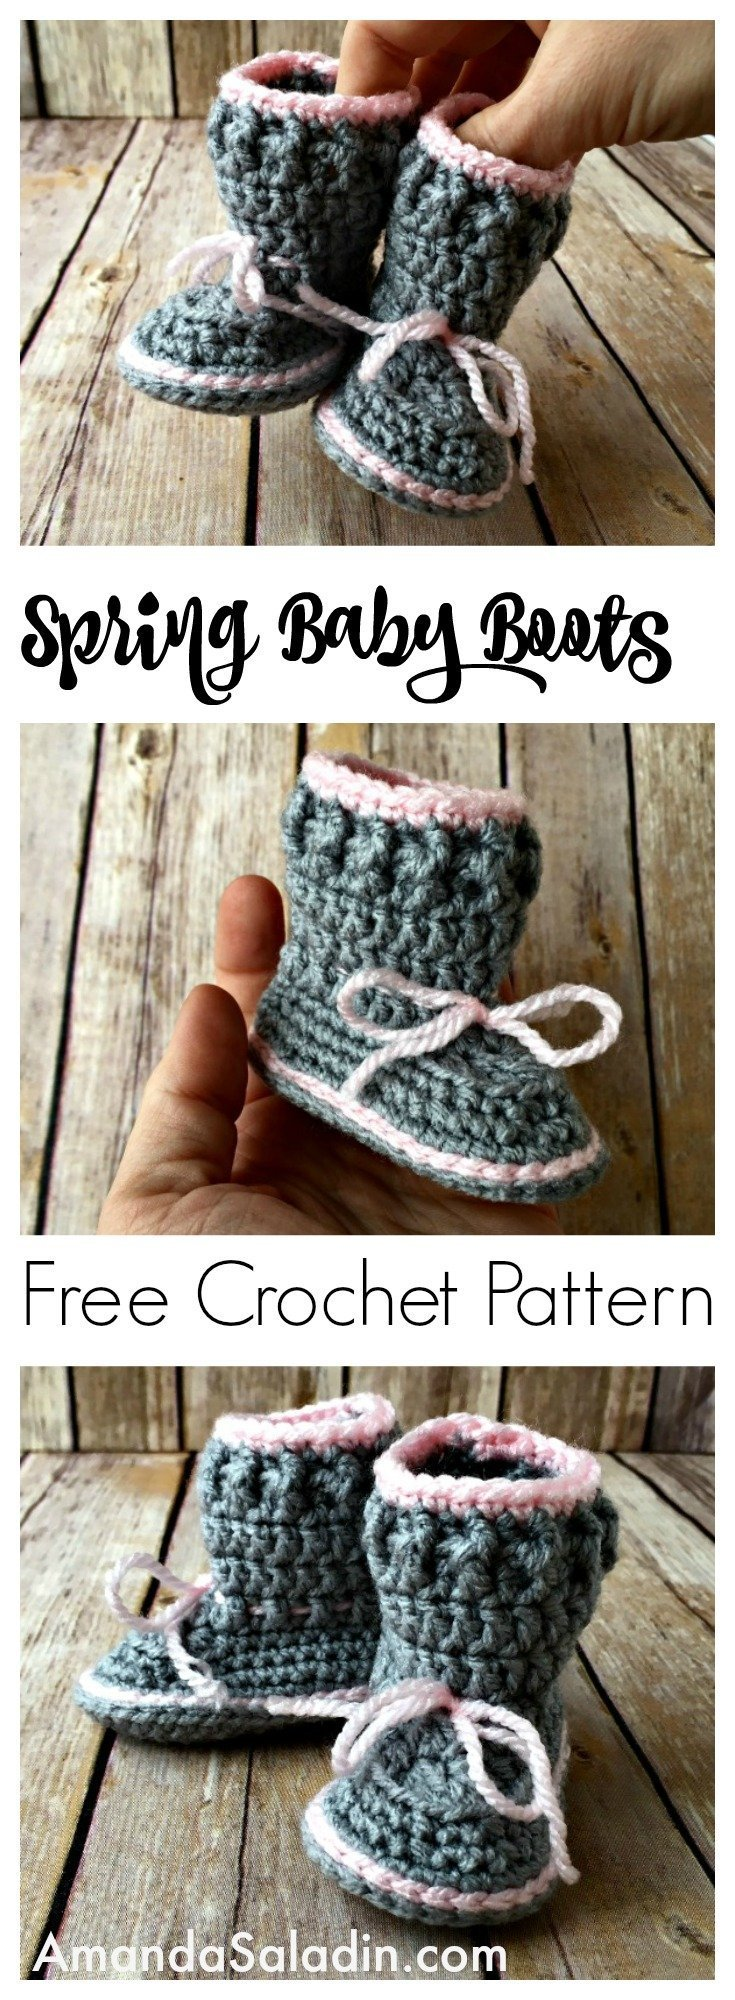 Cute and easy baby boots! Free pattern! I have got to make these...